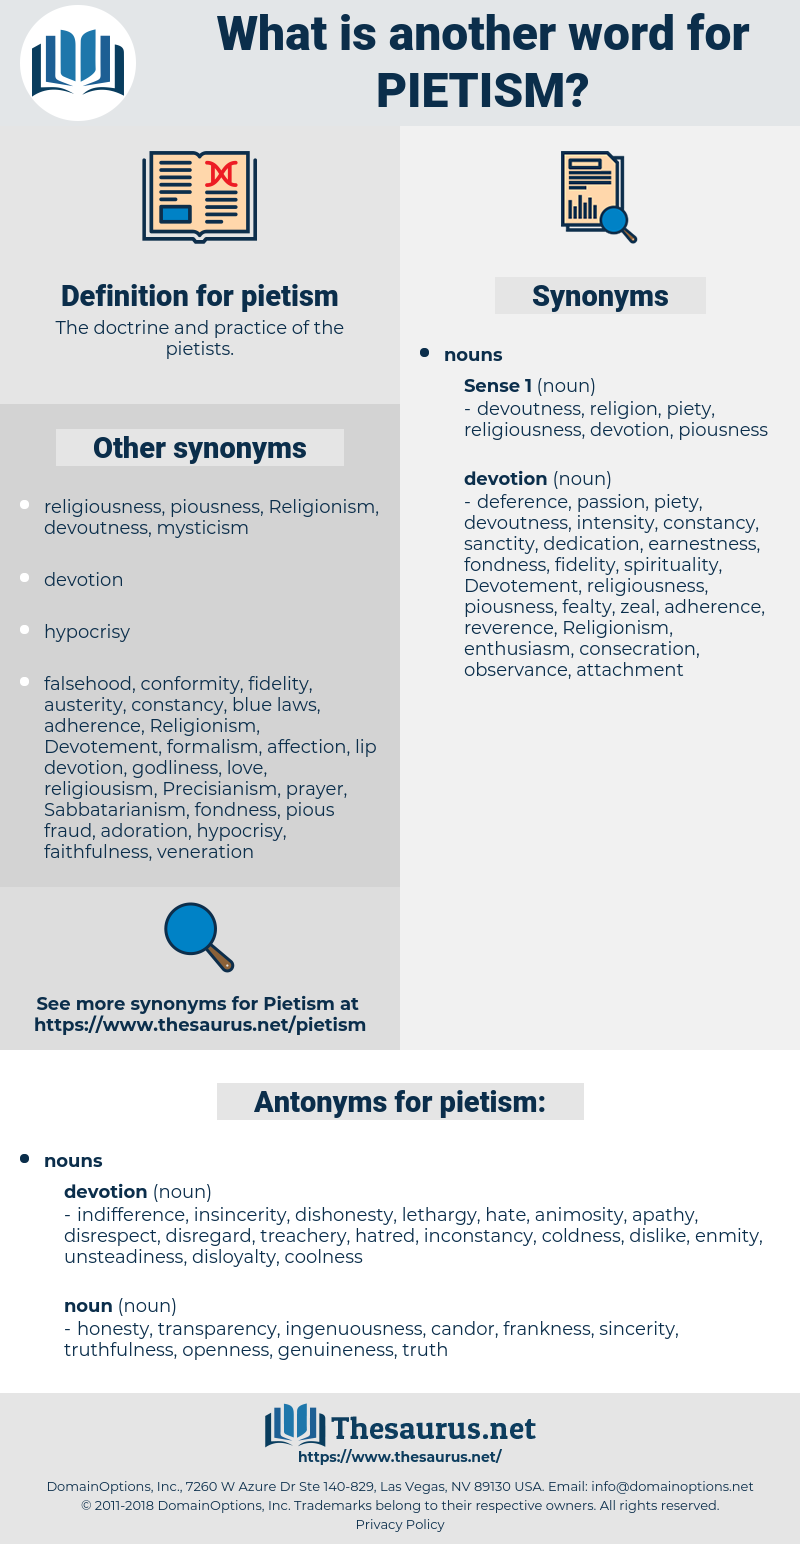 pietism, synonym pietism, another word for pietism, words like pietism, thesaurus pietism